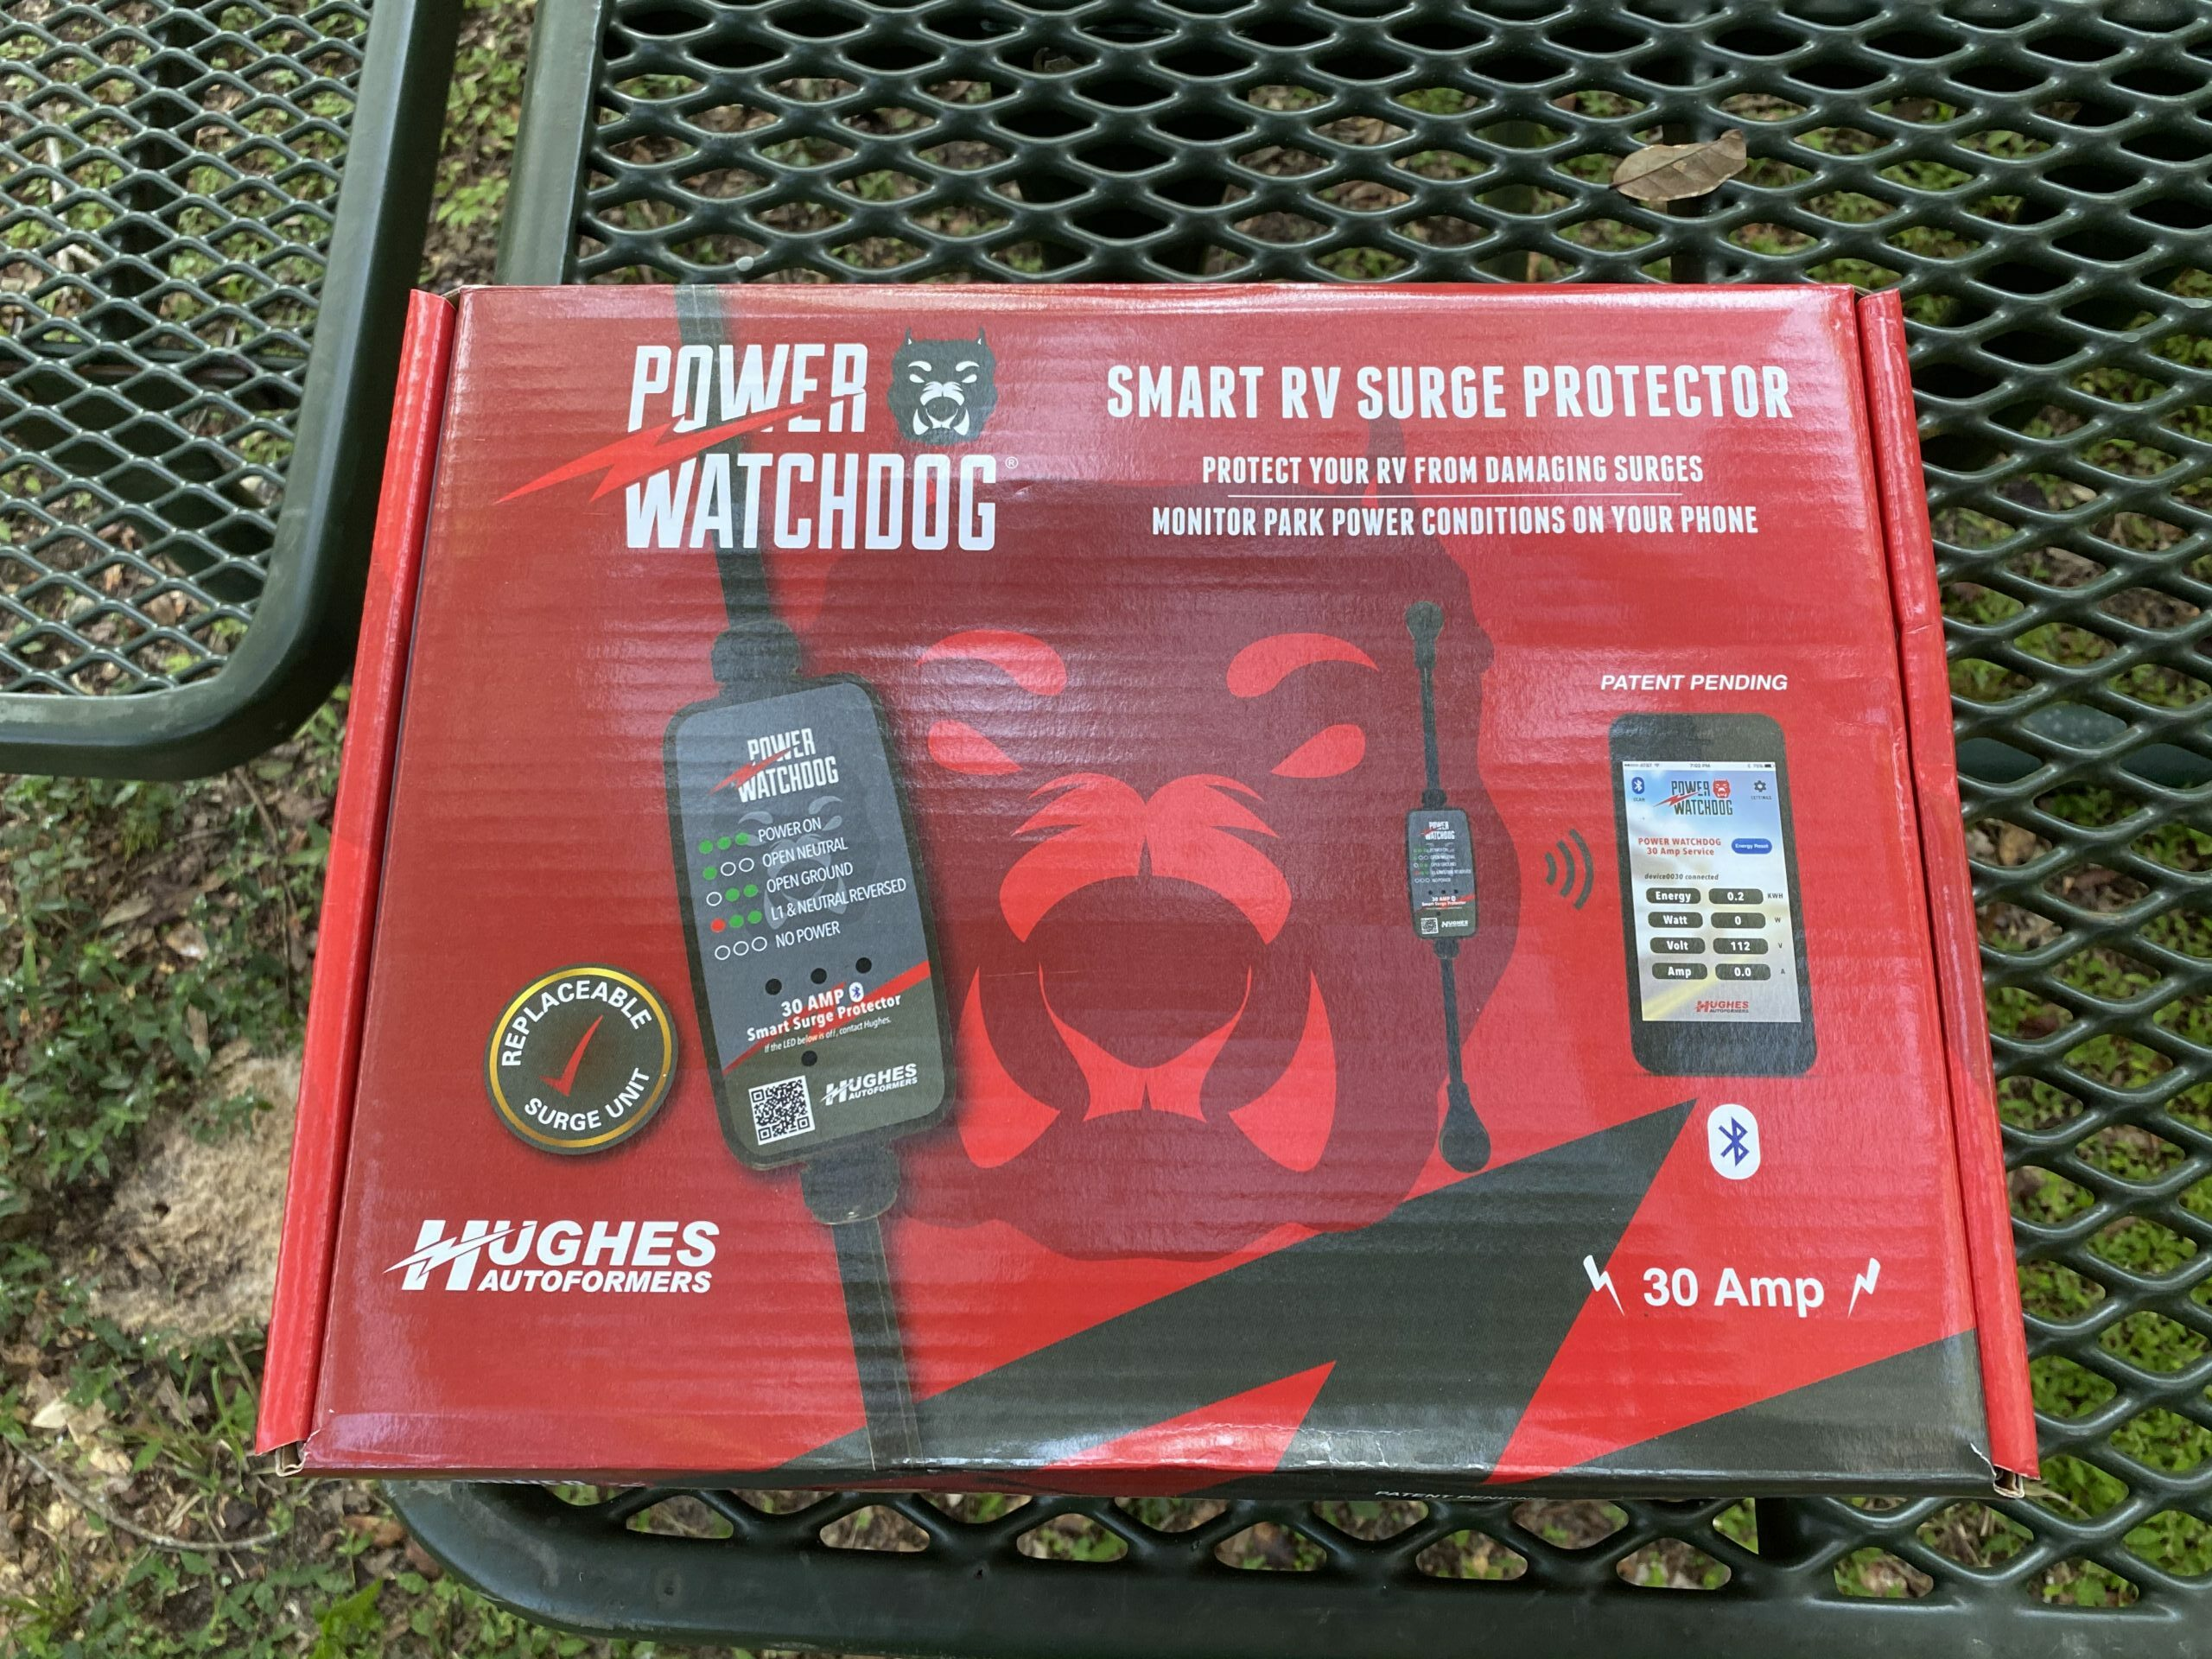 Power Watchdog Box